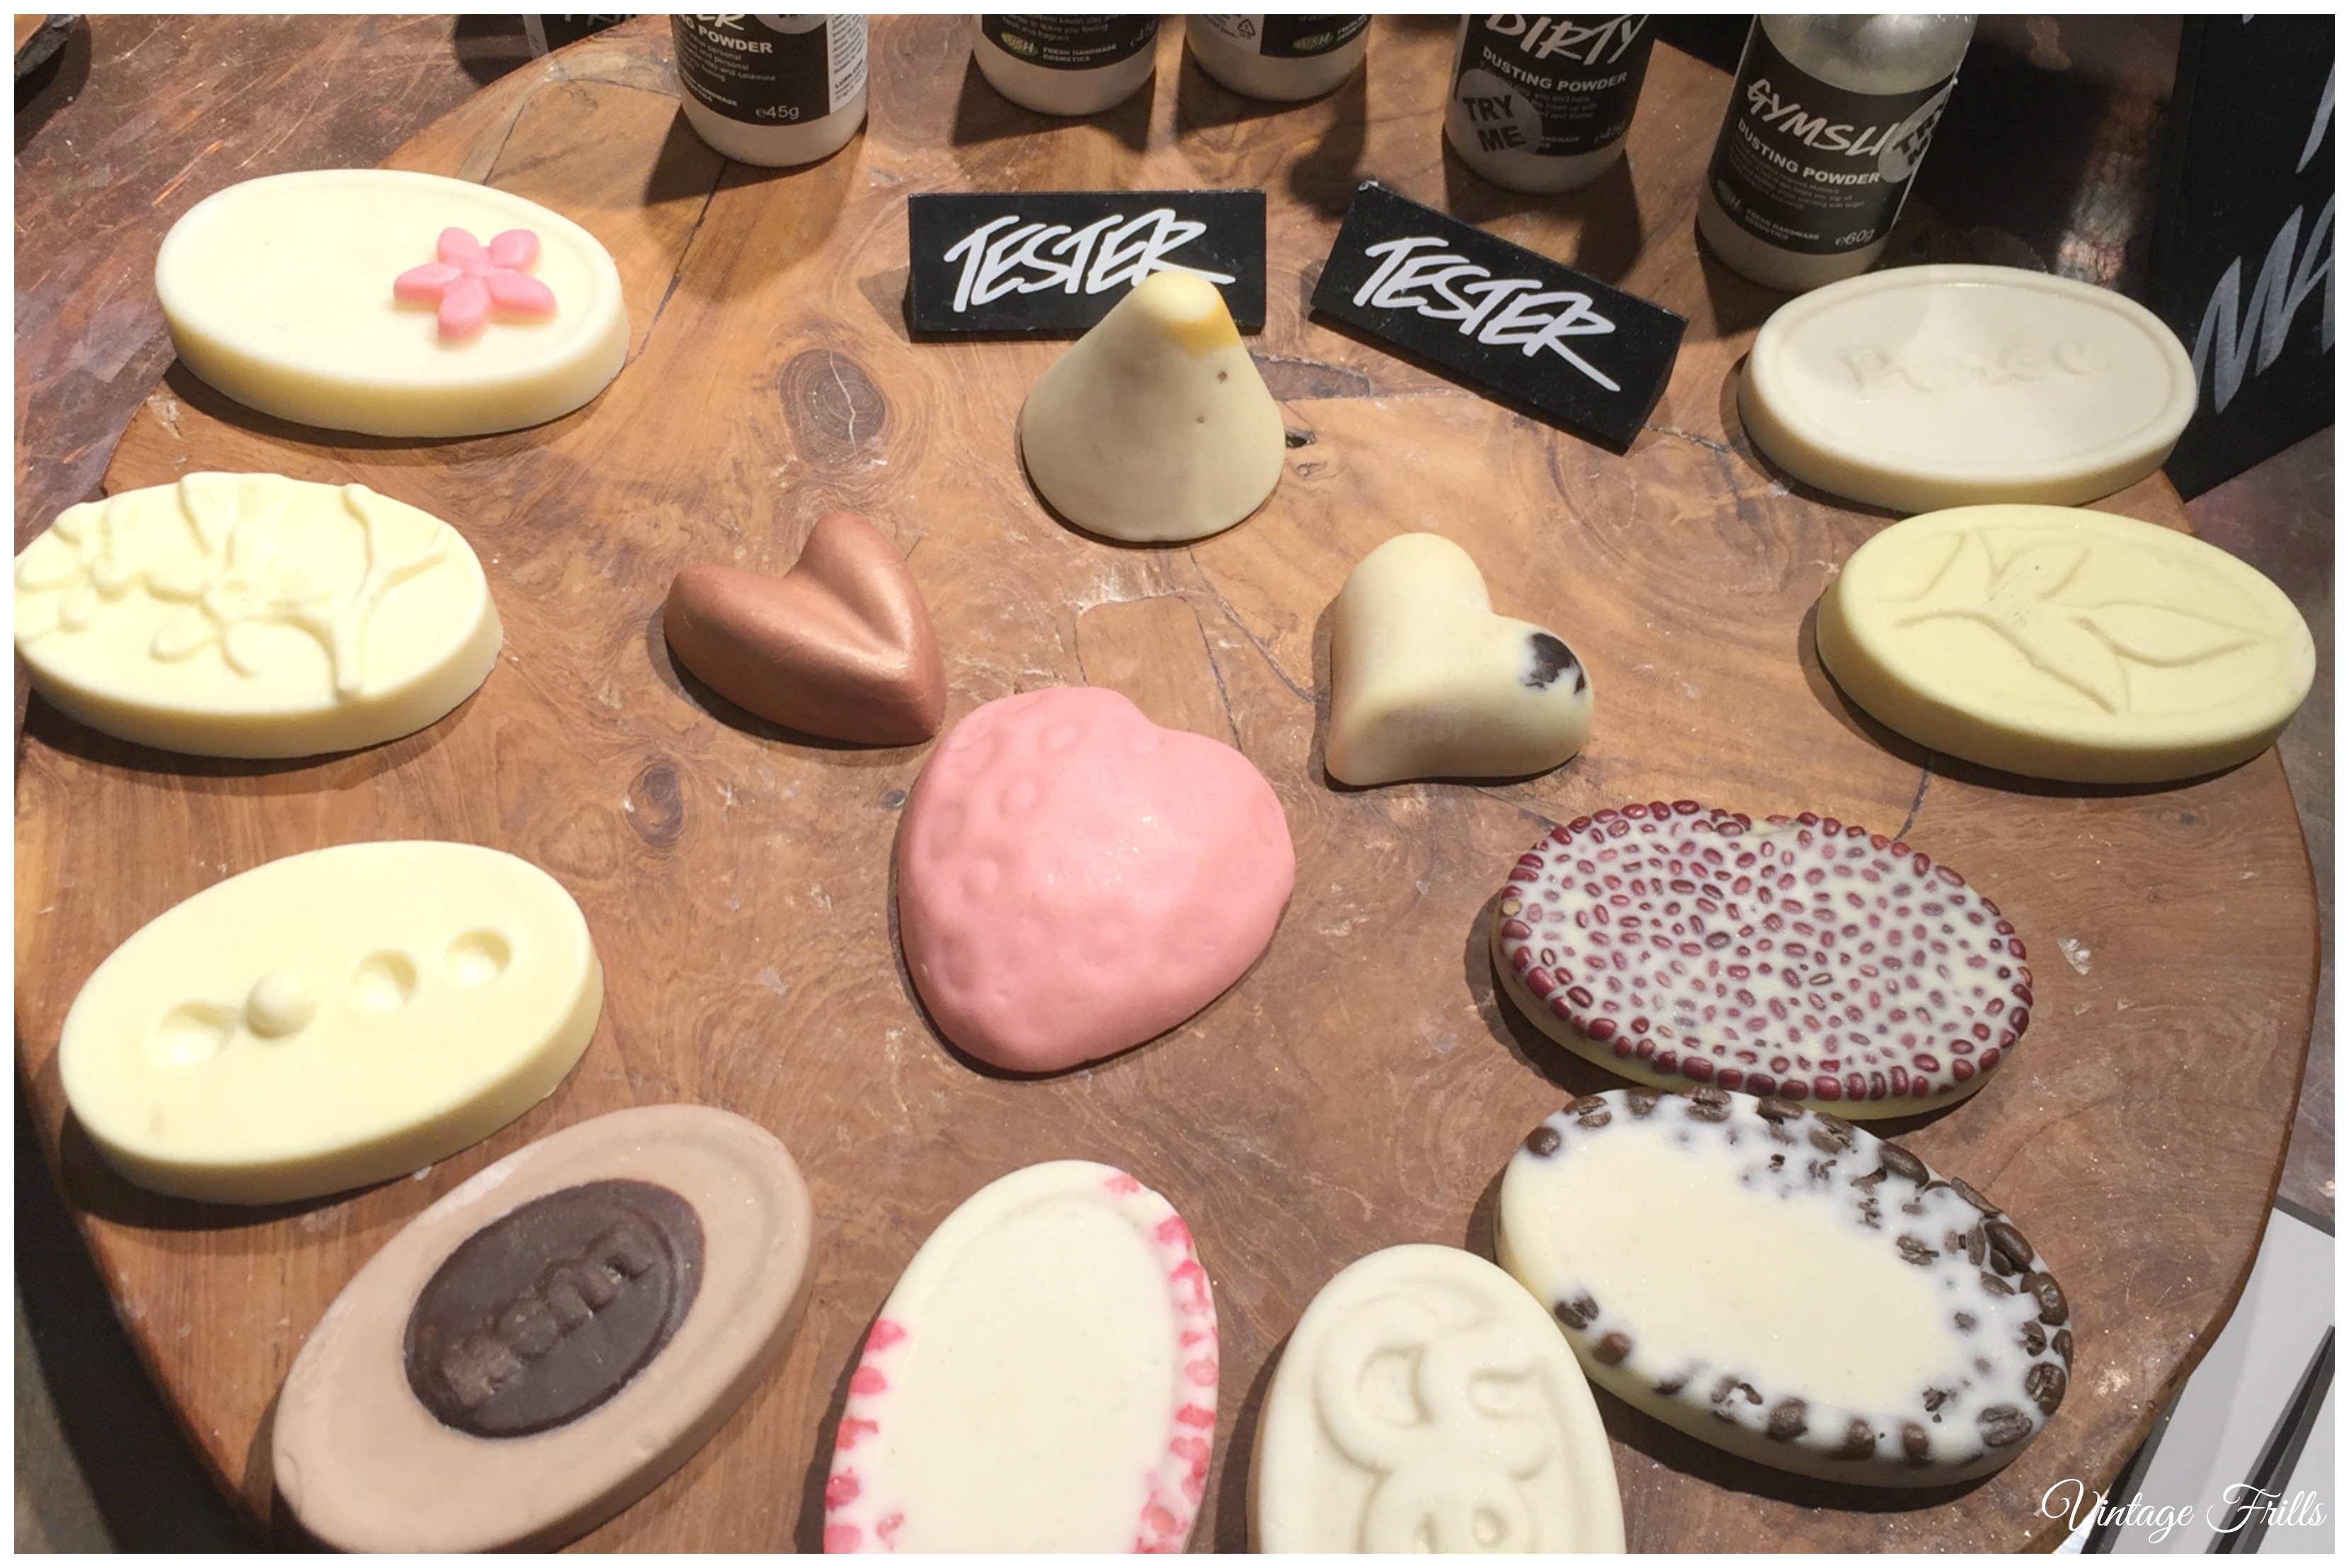 Lush Massage Bars